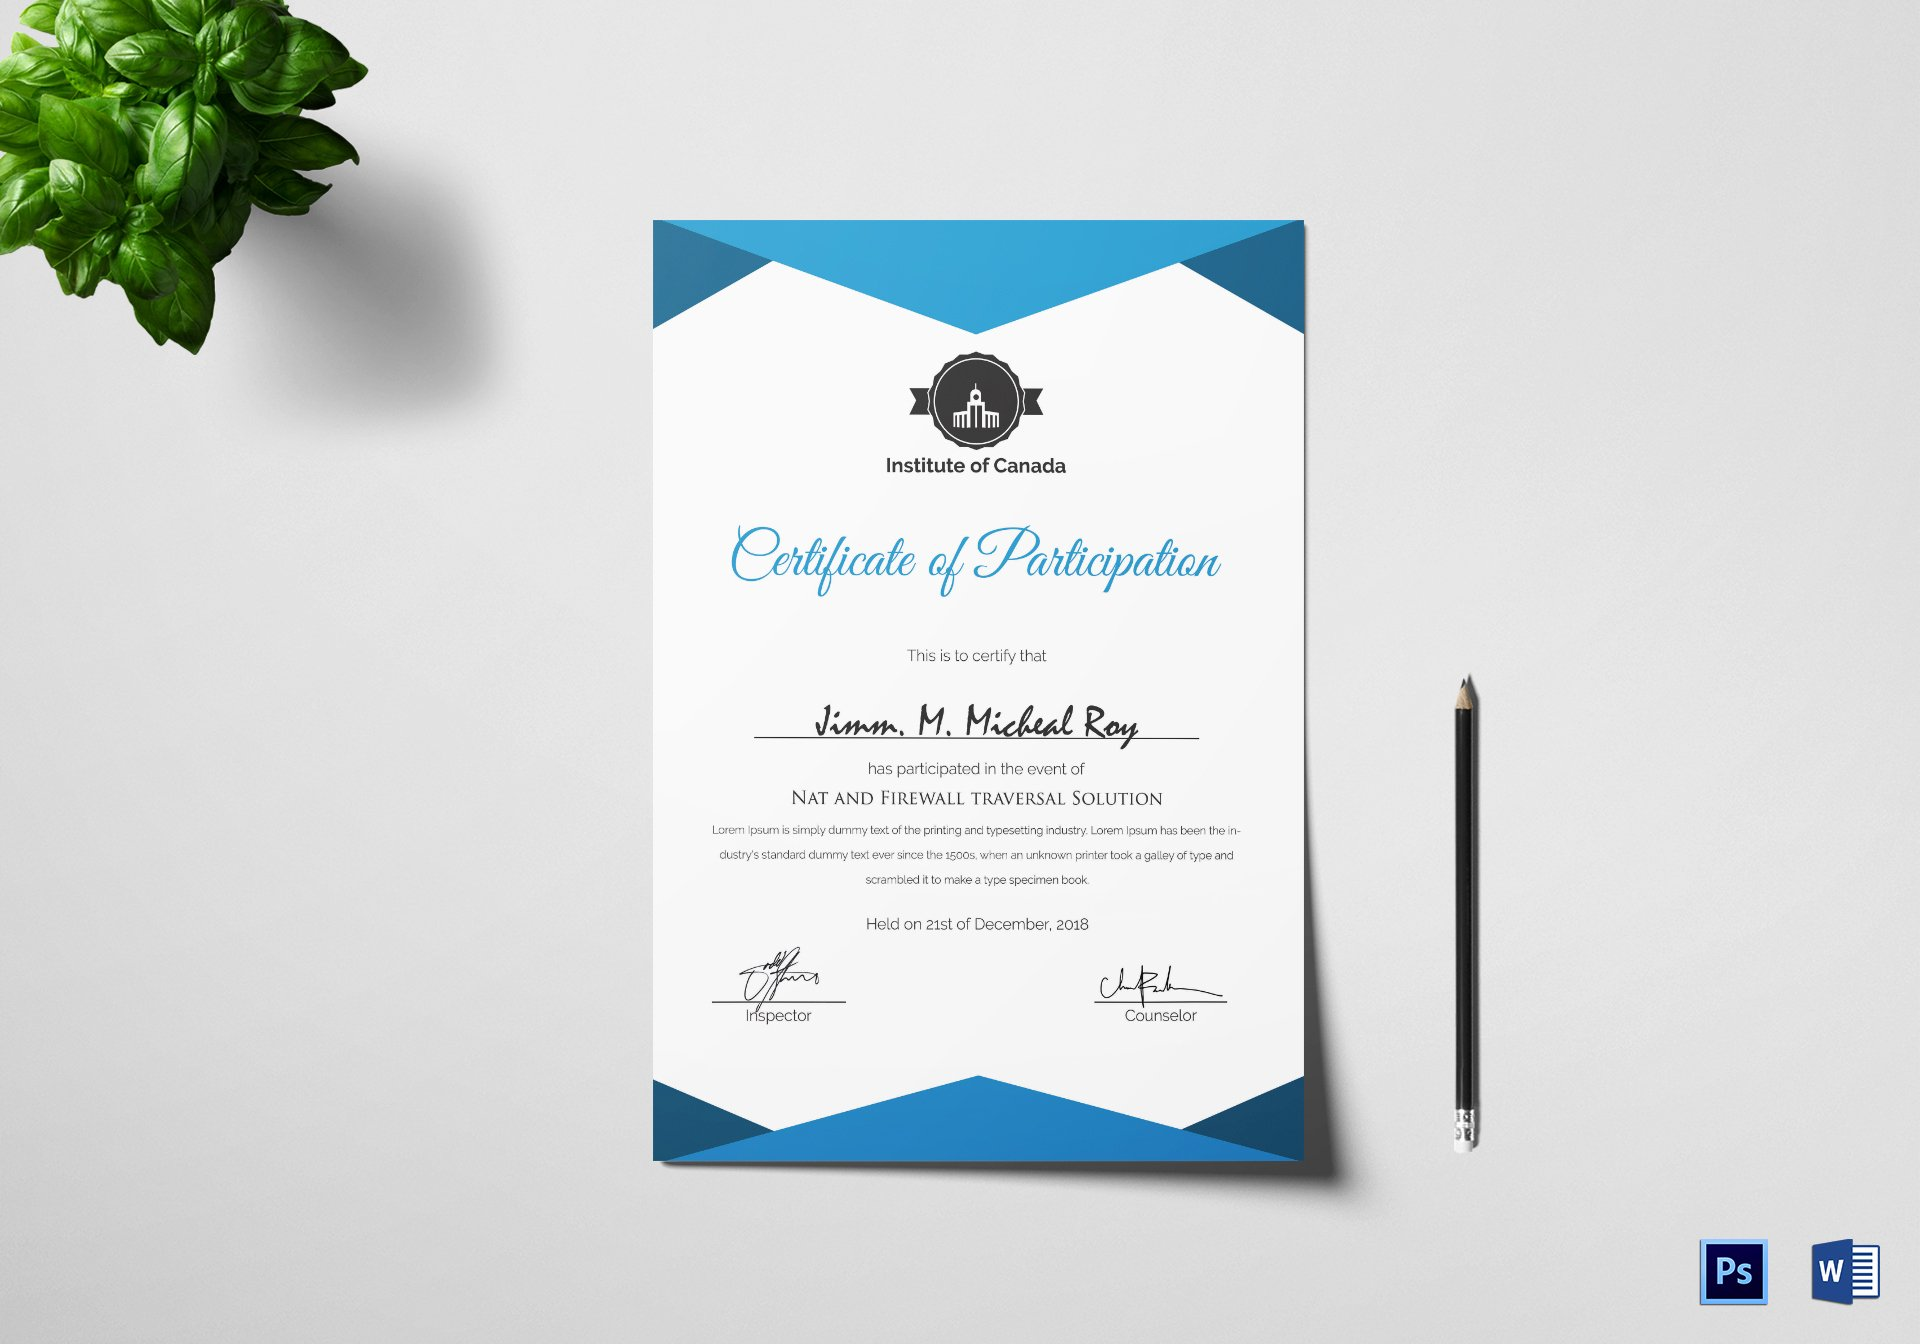 Certificate Of Participation Template Word Beautiful Sample Certificate Of Participation Template In Psd Word